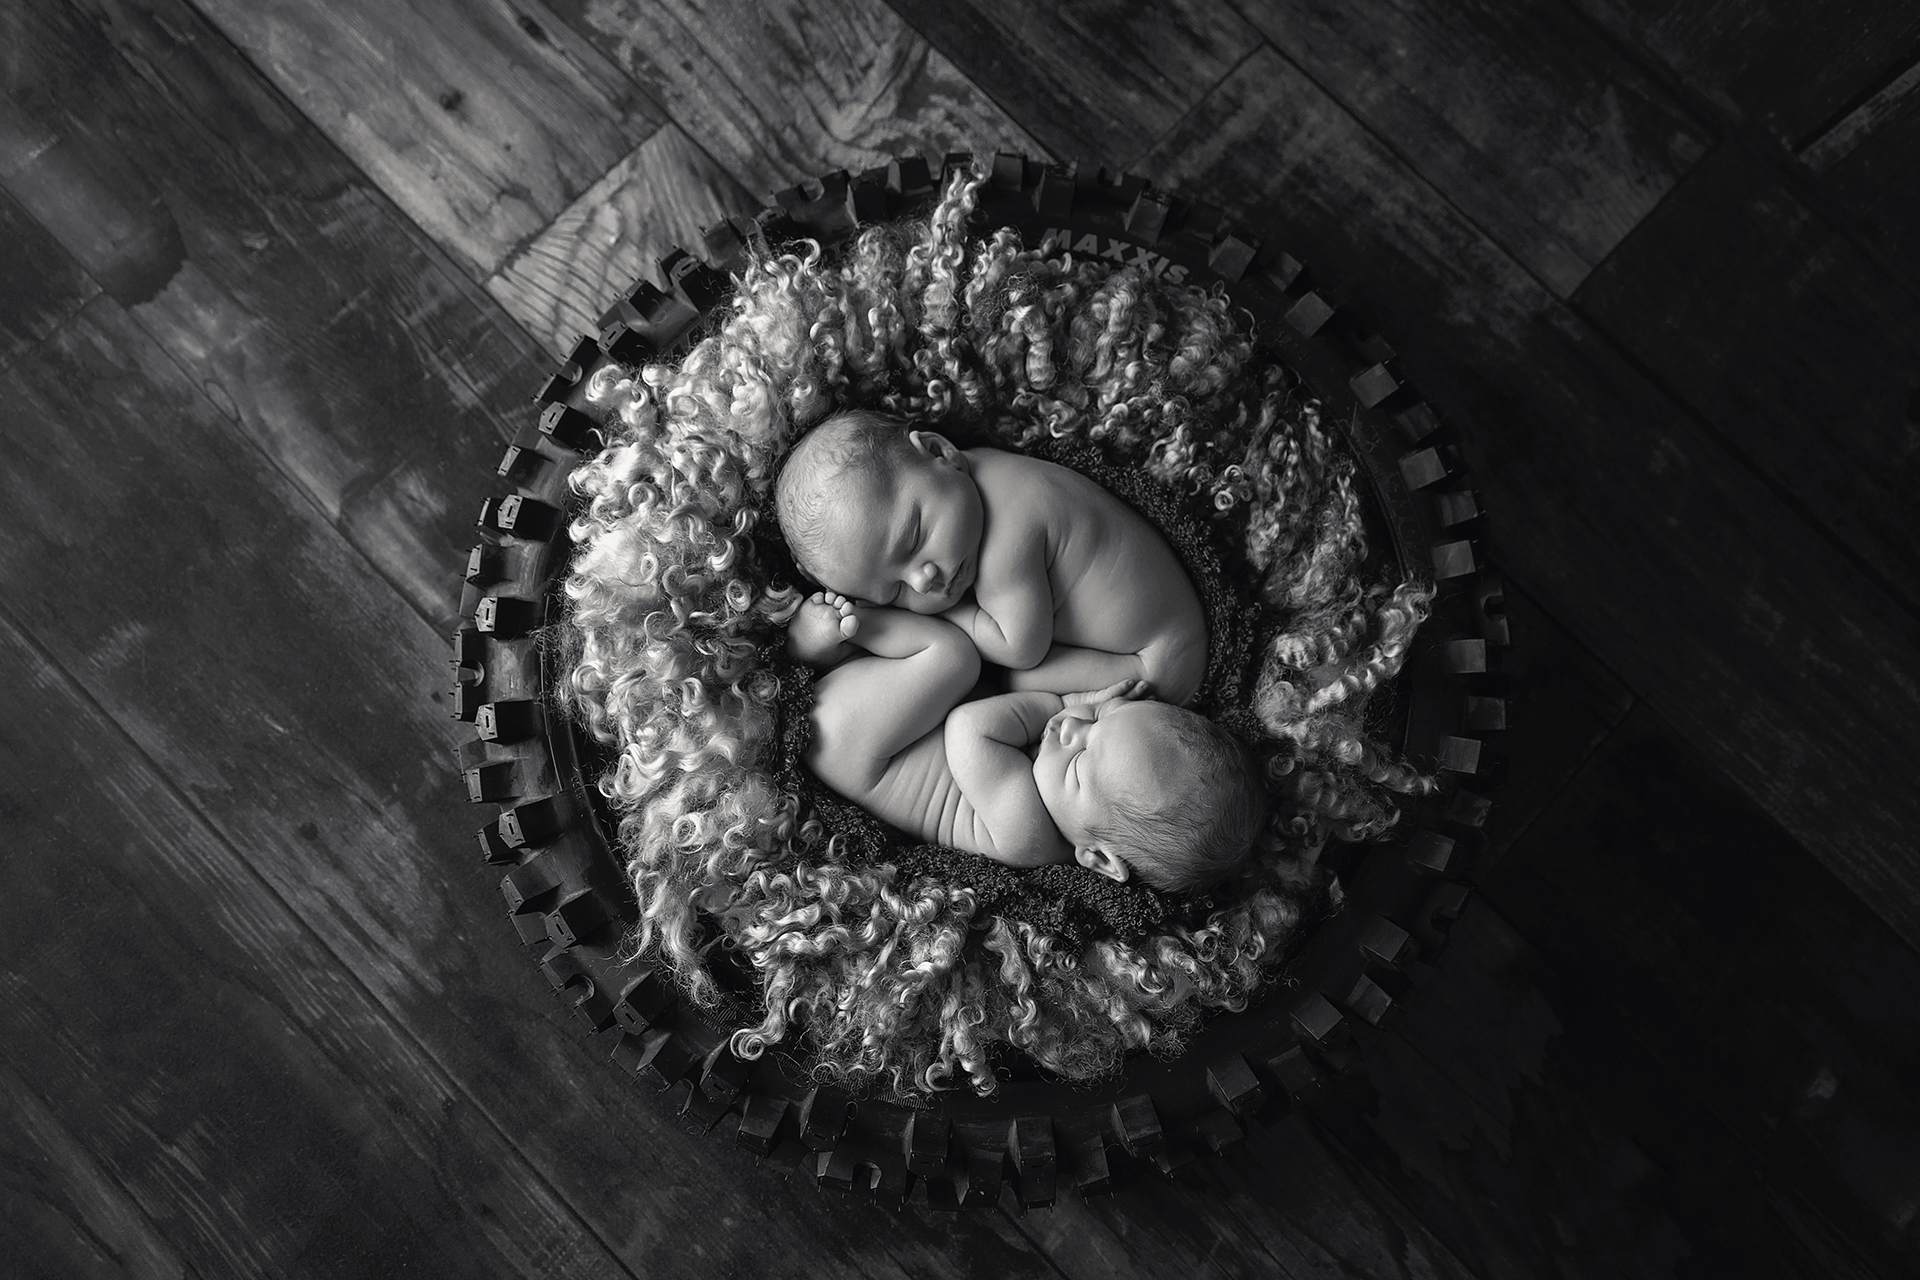 Arlo&Ezra-7days-47Black&White.jpg